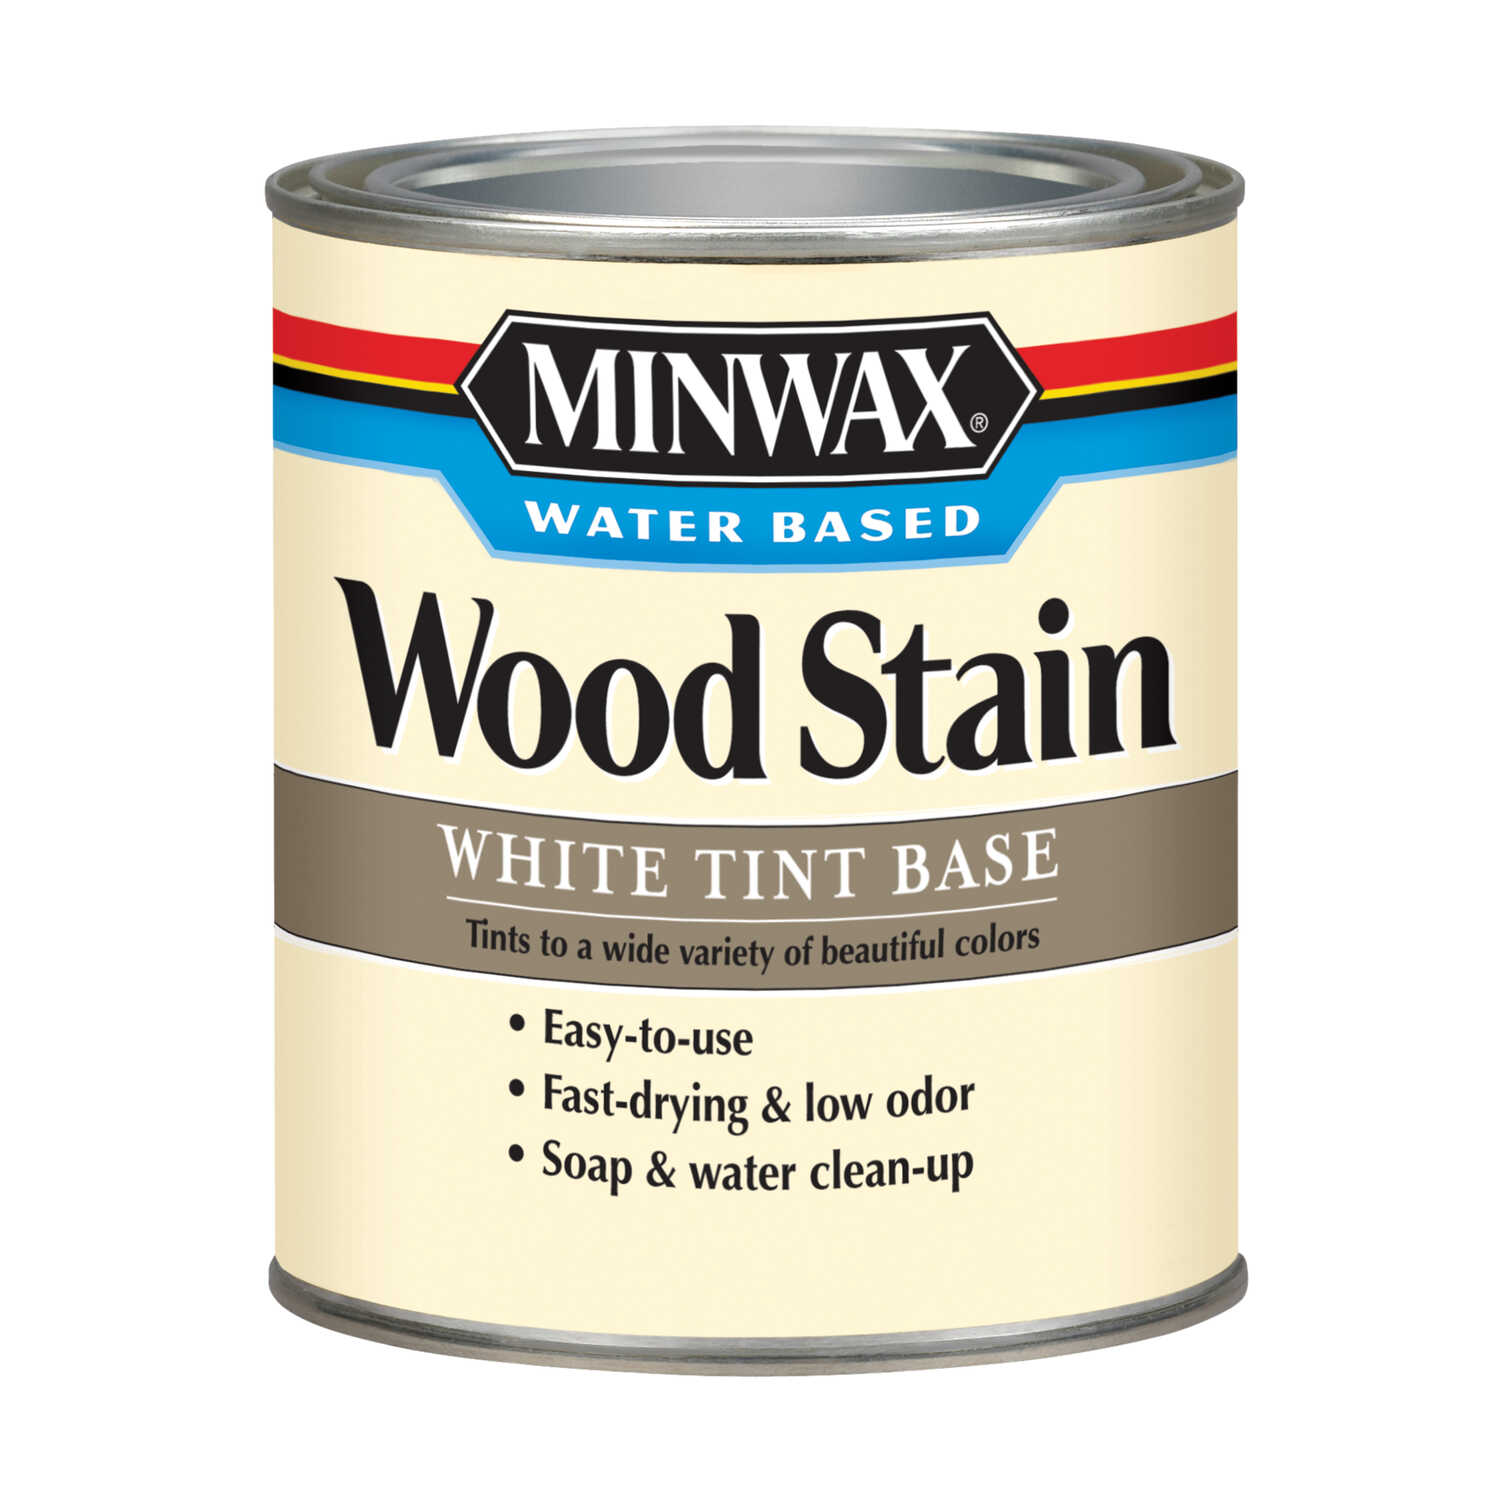 Minwax  Transparent  White Tint Base  Water-Based  Acrylic  Wood Stain  1 qt.